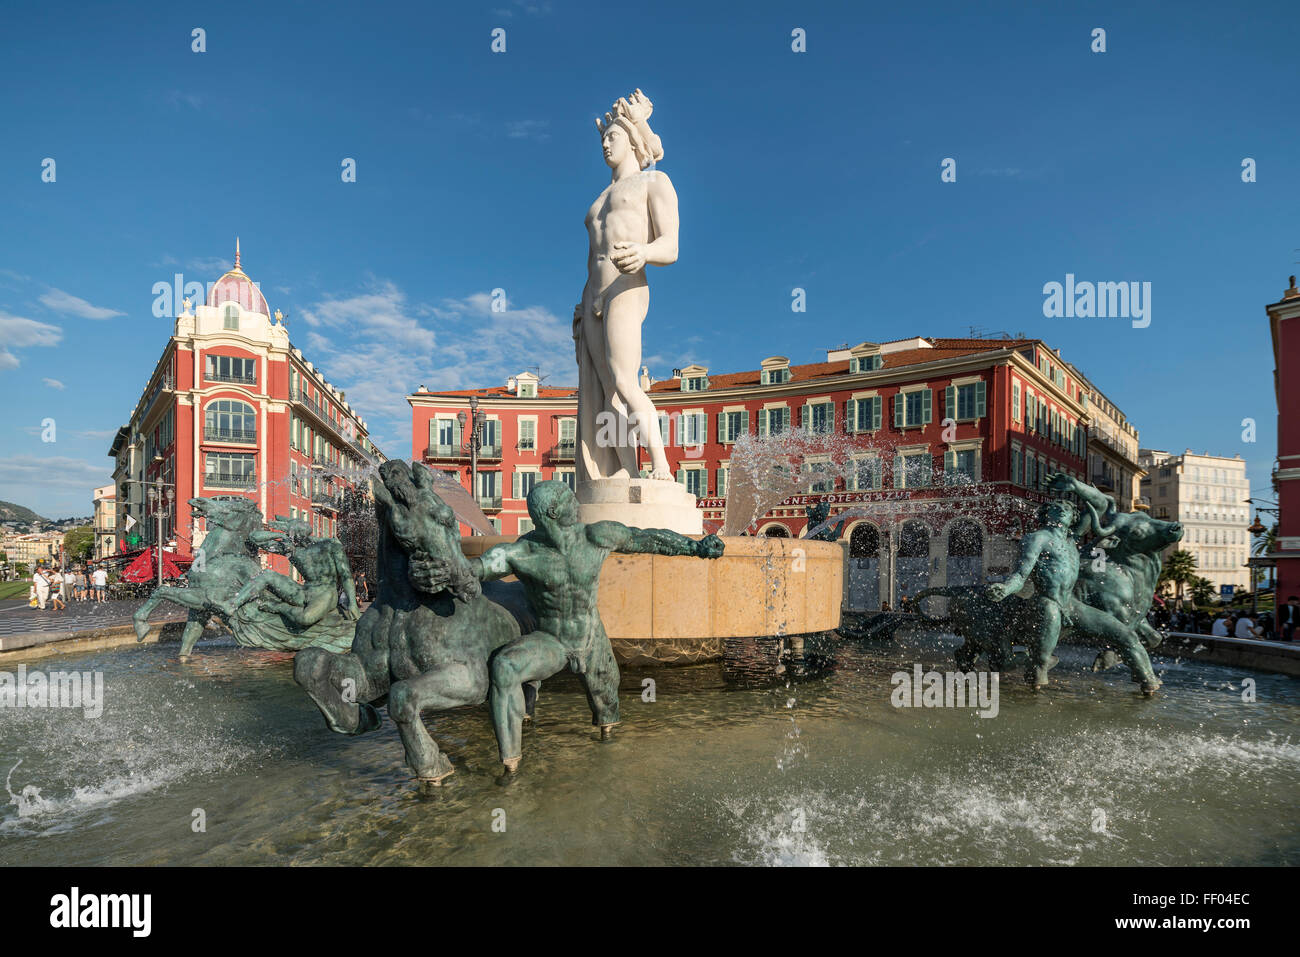 Fountain of the Sun with Apollo statue on Place Massena in Nice, France - Stock Image